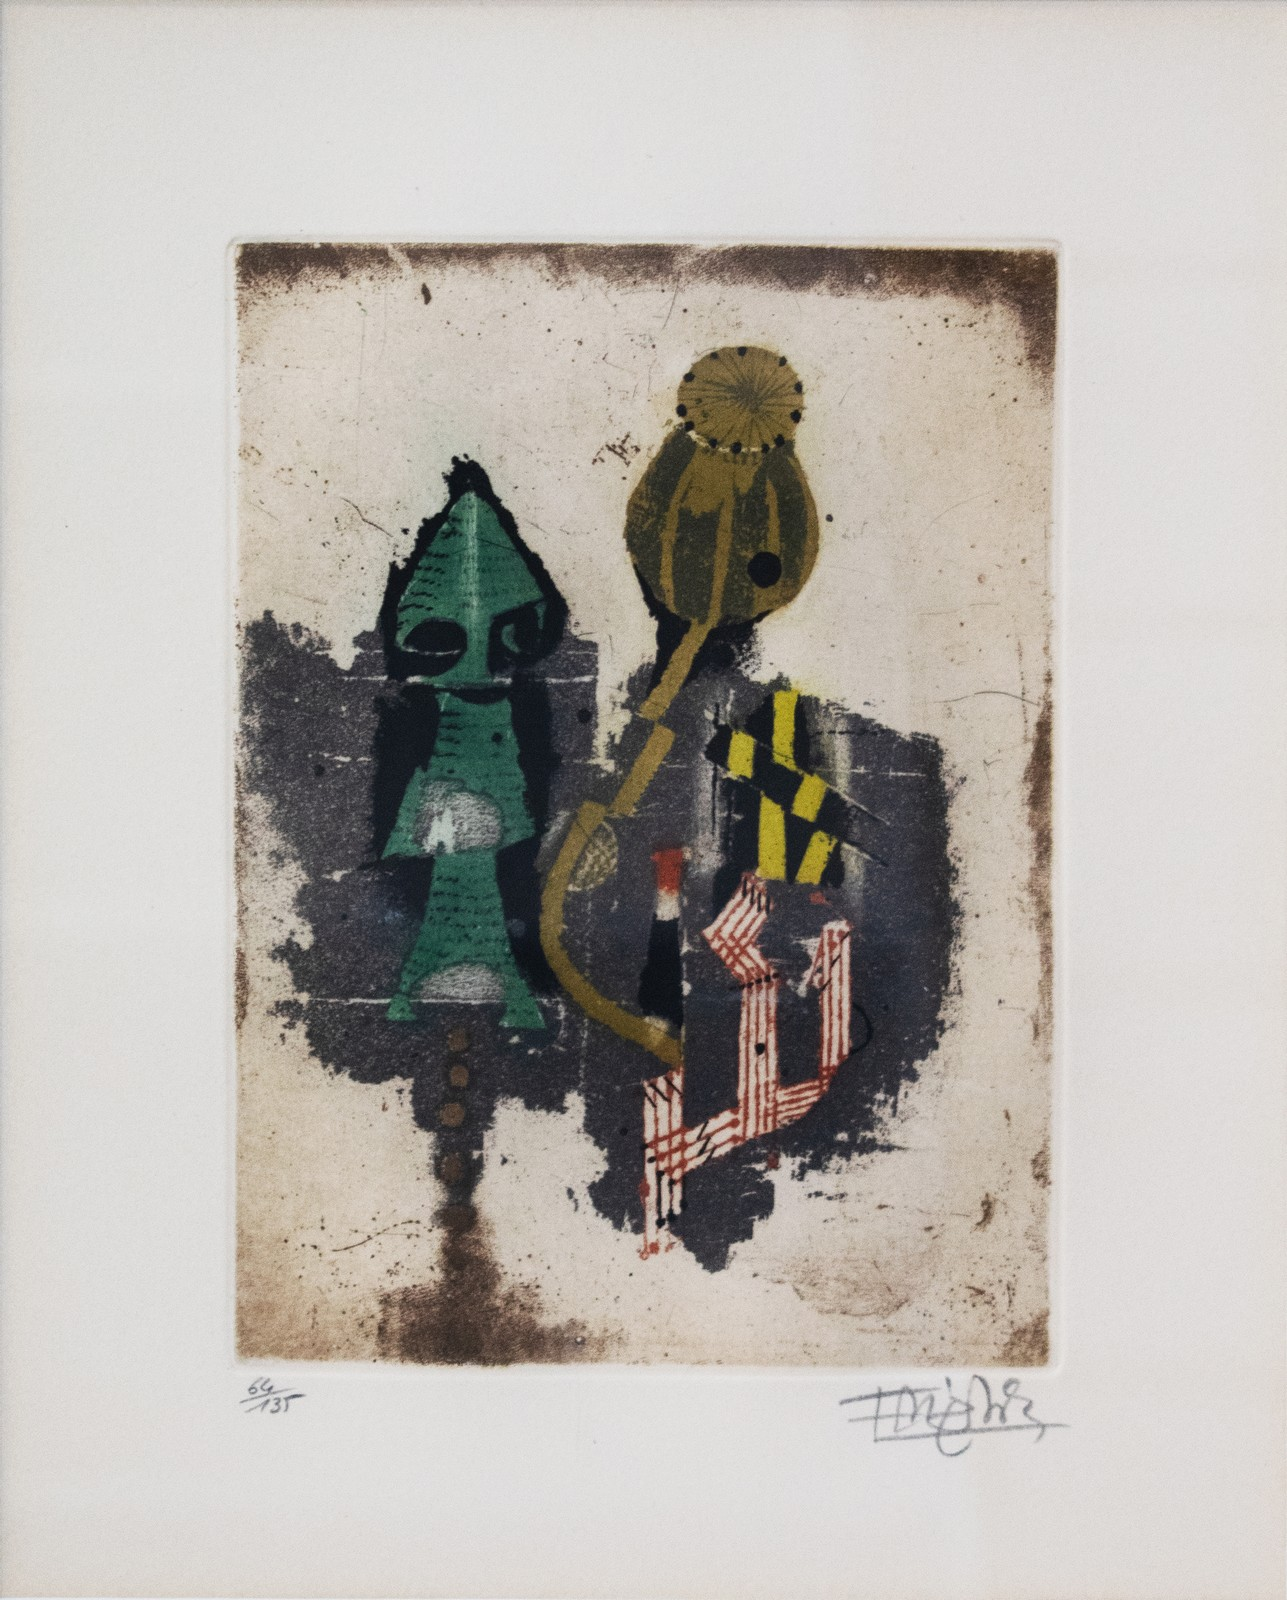 1964, aquatint, etching on paper, signed, 64/135, 14,9 x 20 cm